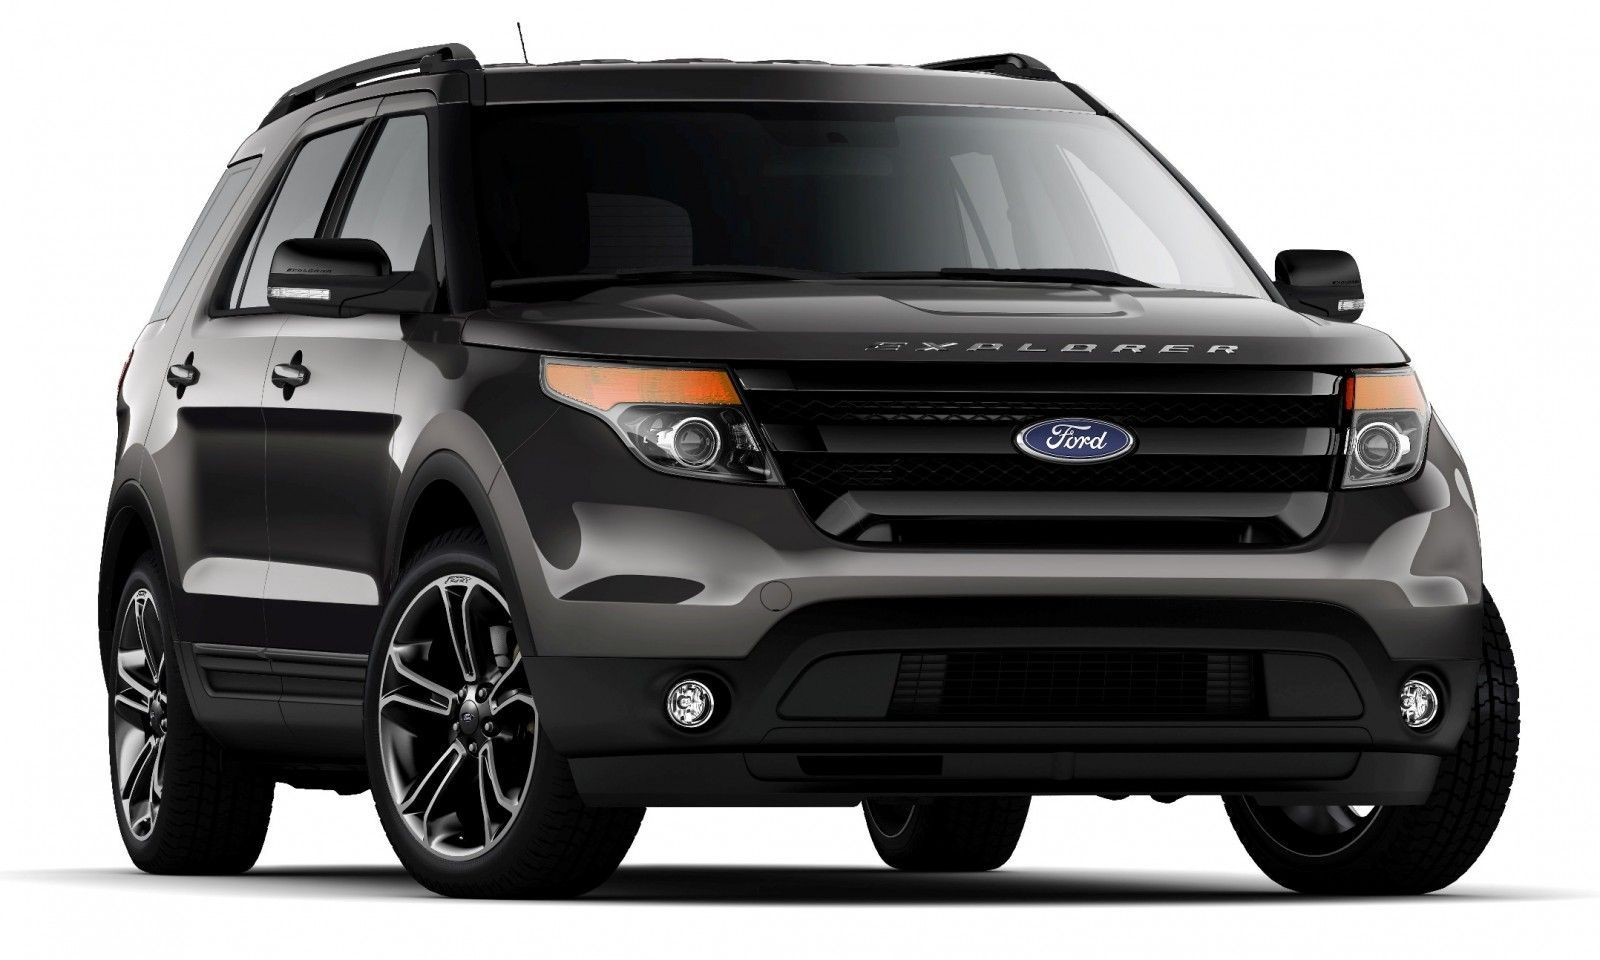 2015 Ford Explorer Xlt Appearance Pack Adds 2 0l Turbo Big Wheels And Dark Grey Black Trims Best New Car In 2020 Ford Explorer Xlt Chevy Diesel Trucks Best New Cars